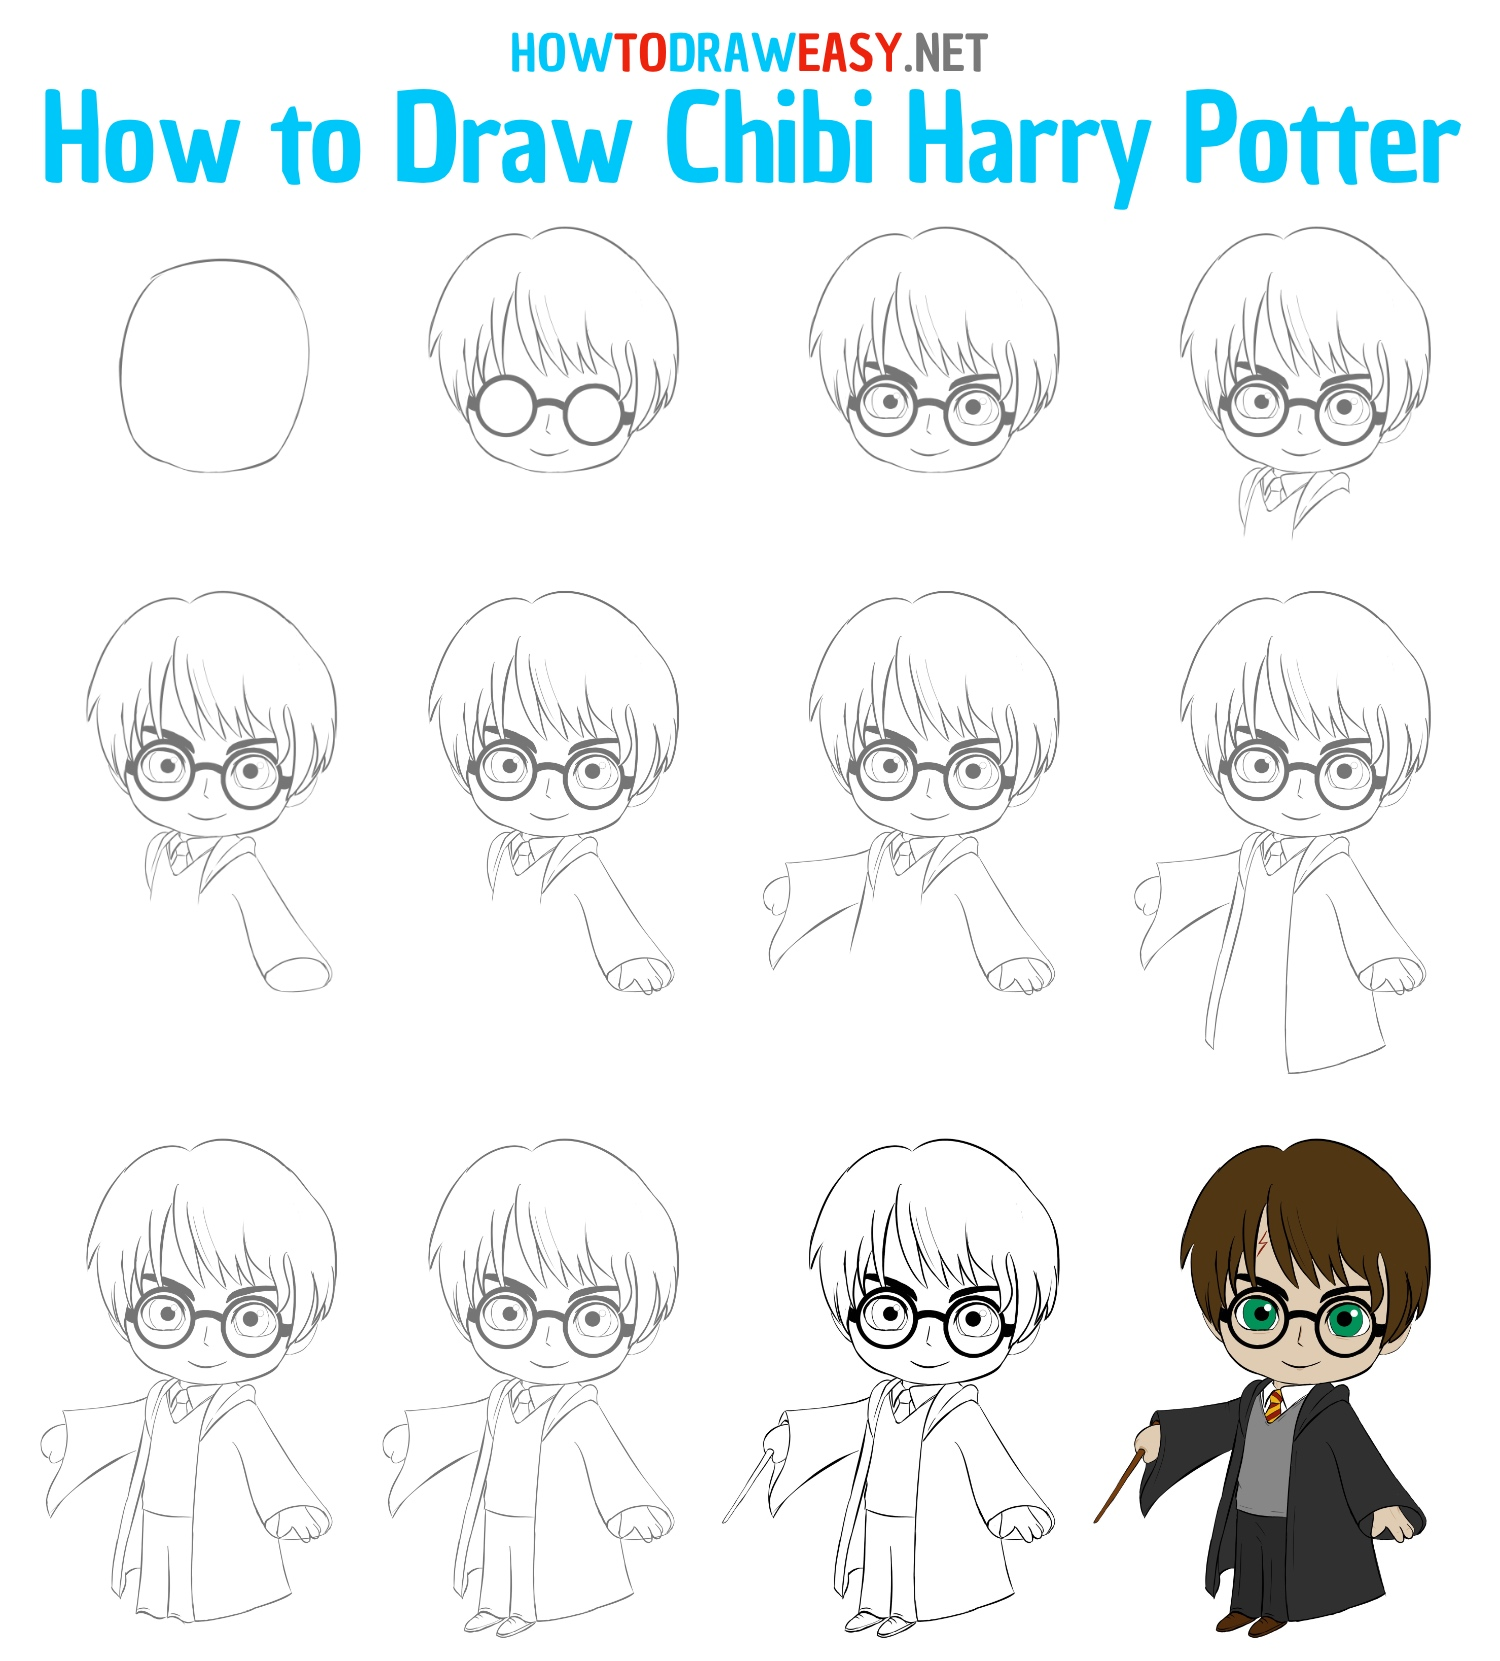 How to Draw Chibi Harry Potter Step by Step